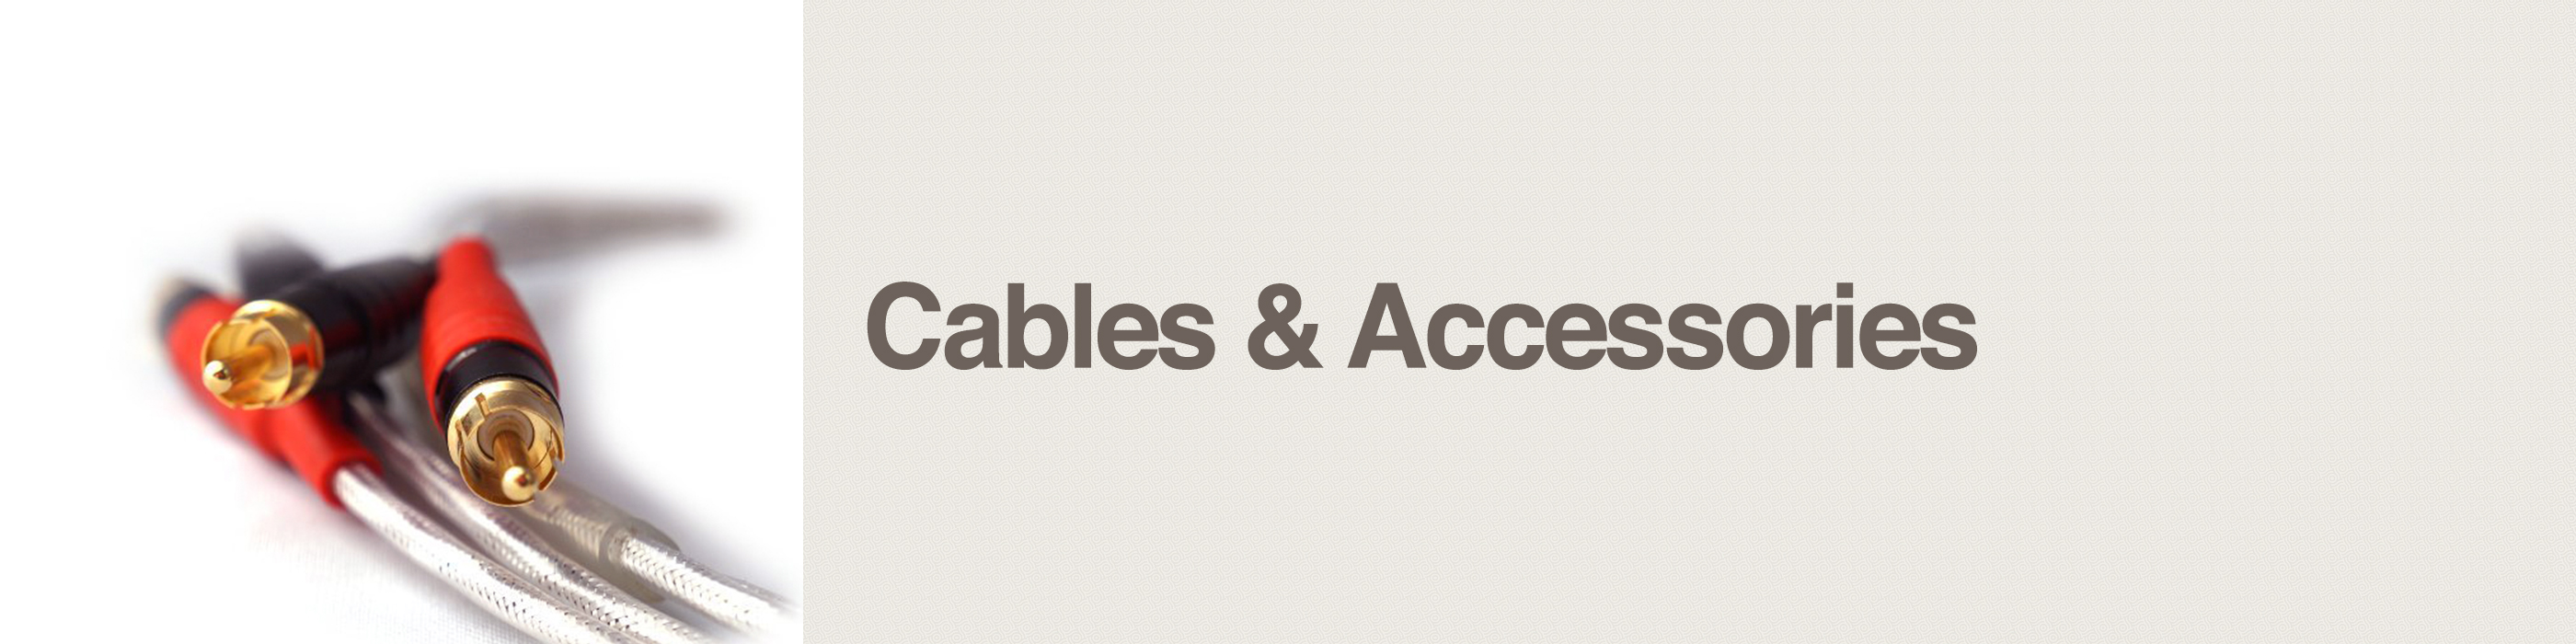 cables and accessories header